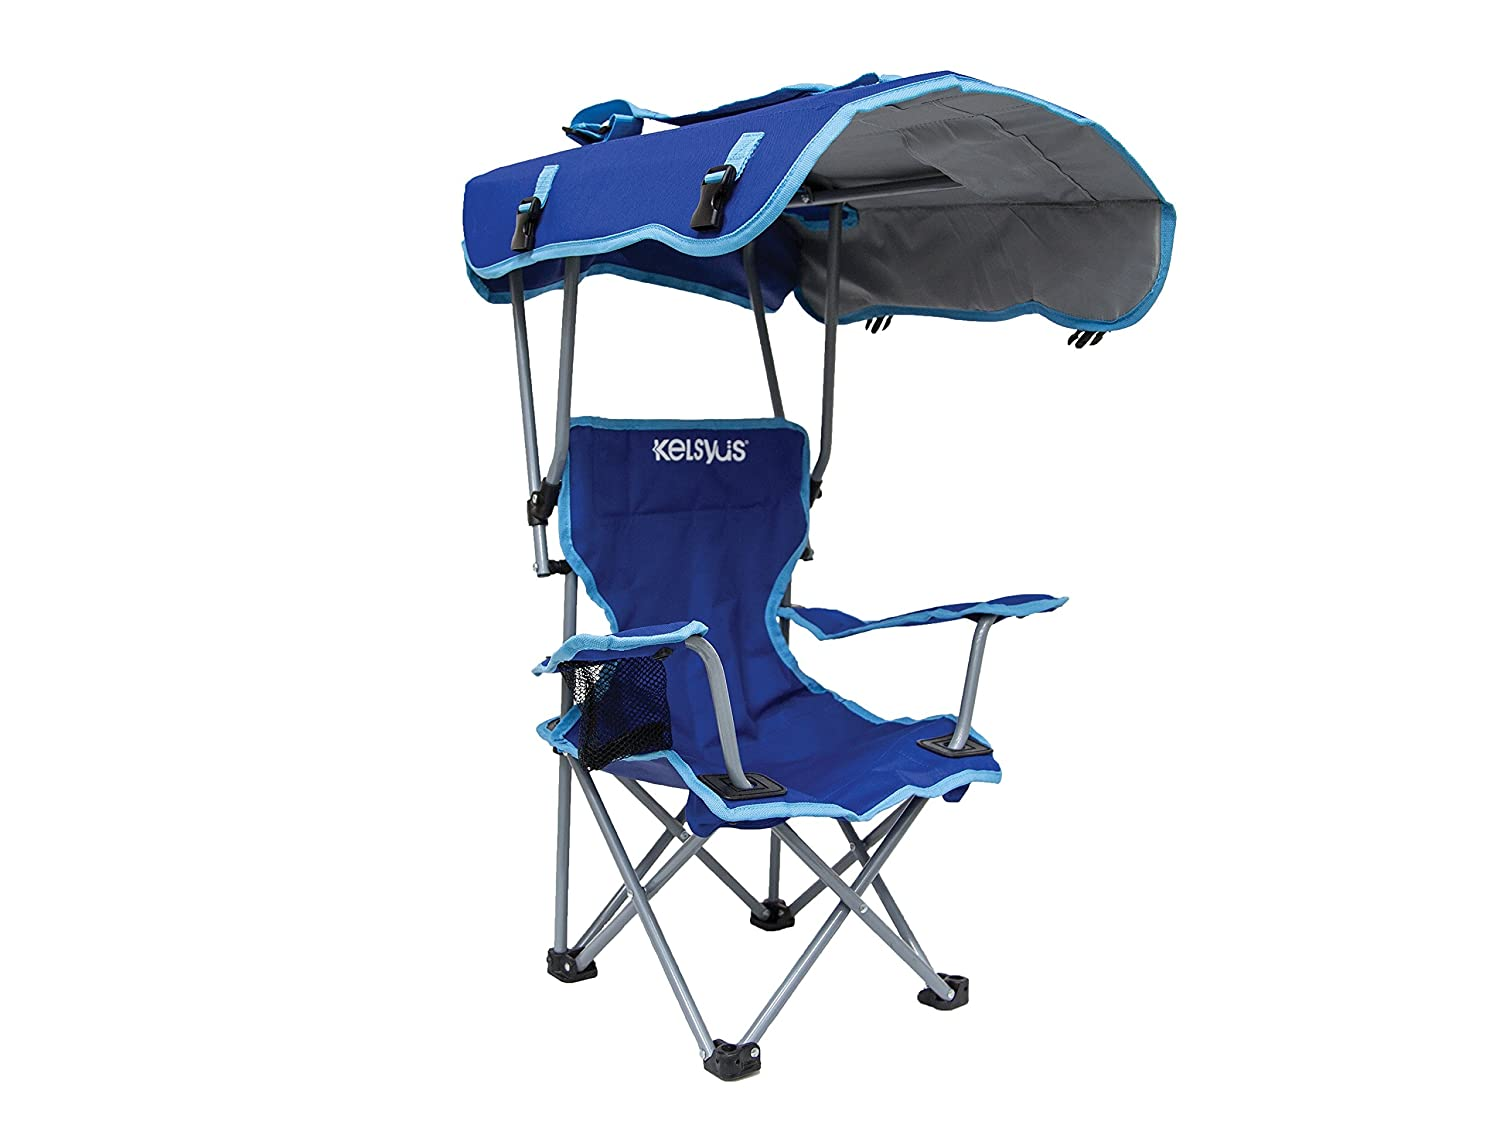 Amazon.com  Kelsyus Kidu0027s Canopy Chair  C&ing Chairs  Sports u0026 Outdoors  sc 1 st  Amazon.com & Amazon.com : Kelsyus Kidu0027s Canopy Chair : Camping Chairs : Sports ...